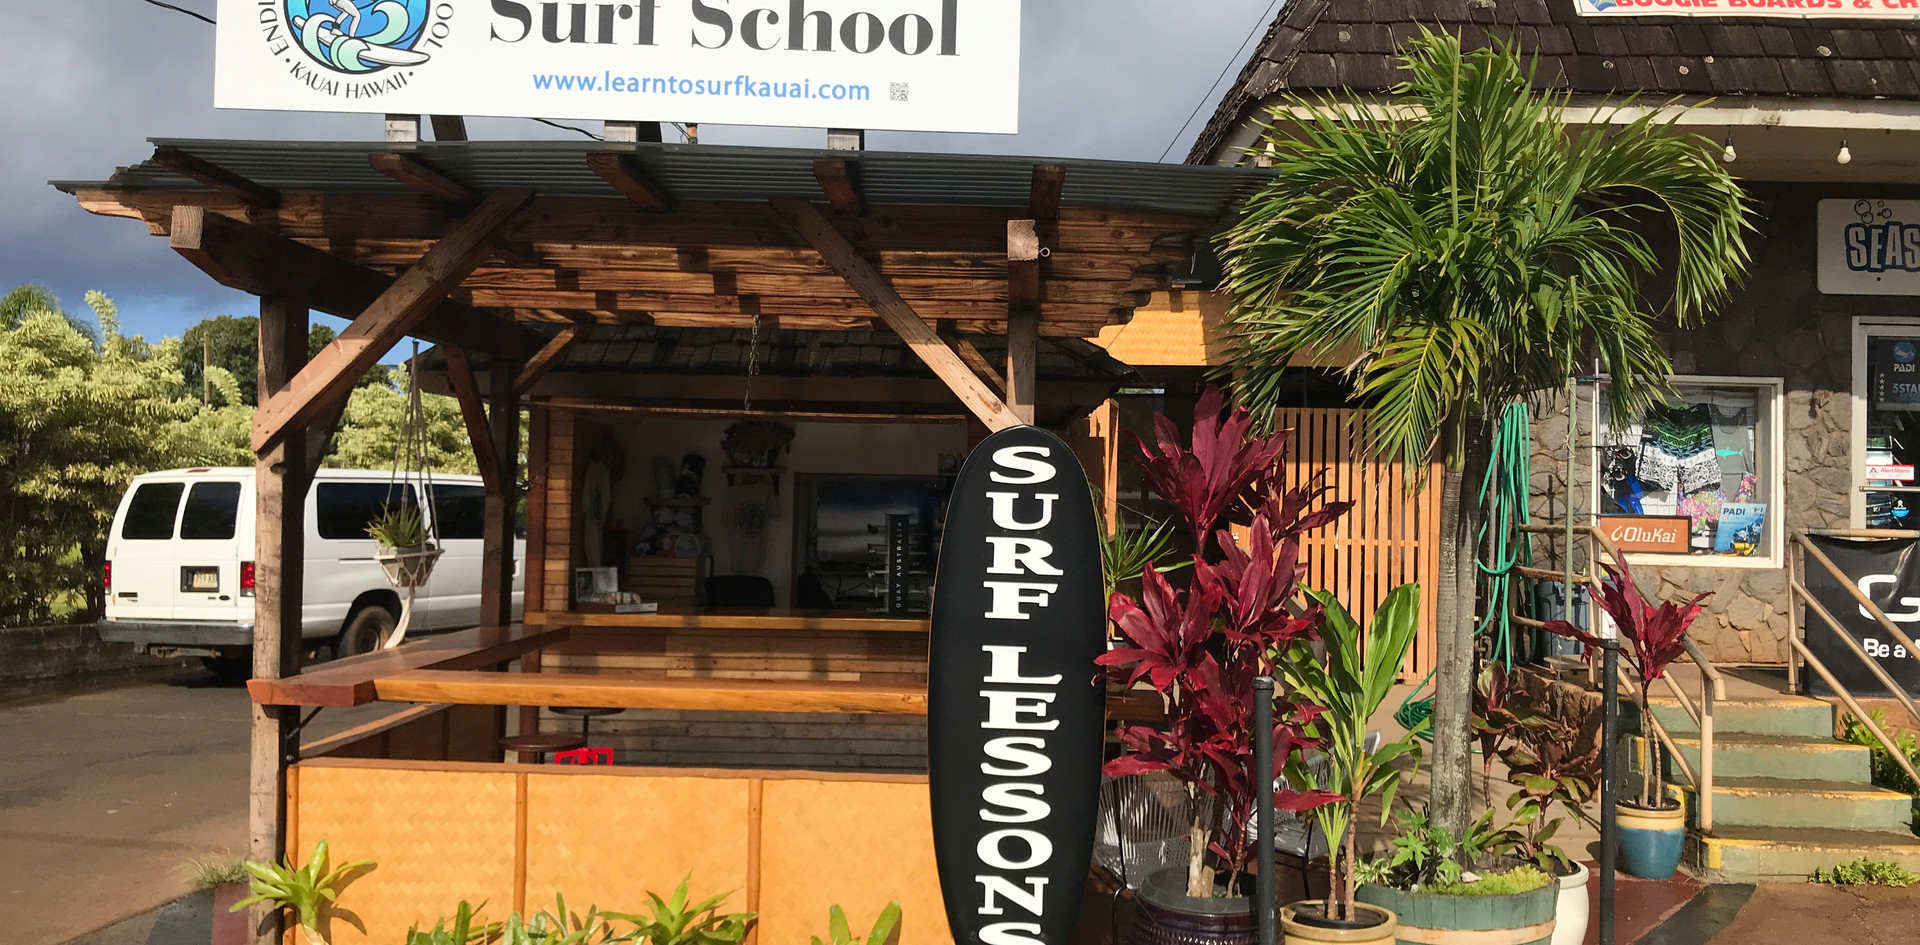 ENDLESS SUMMER SURF SCHOOL KAUAI